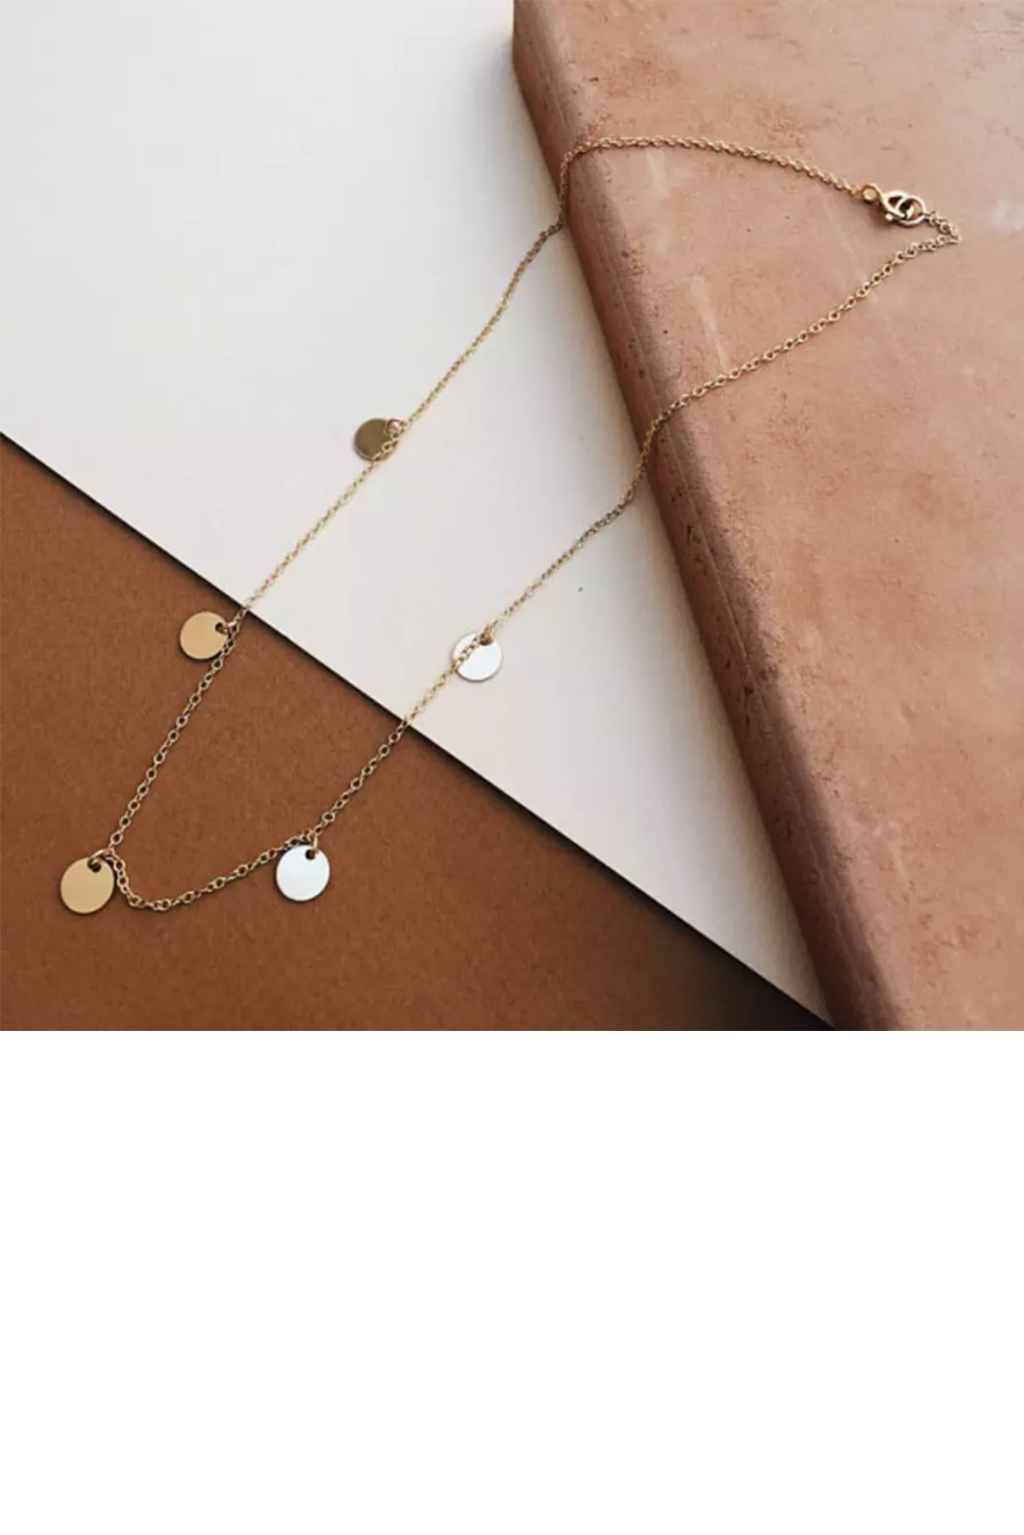 Tumble - 5 Disc Choker Layering Necklace